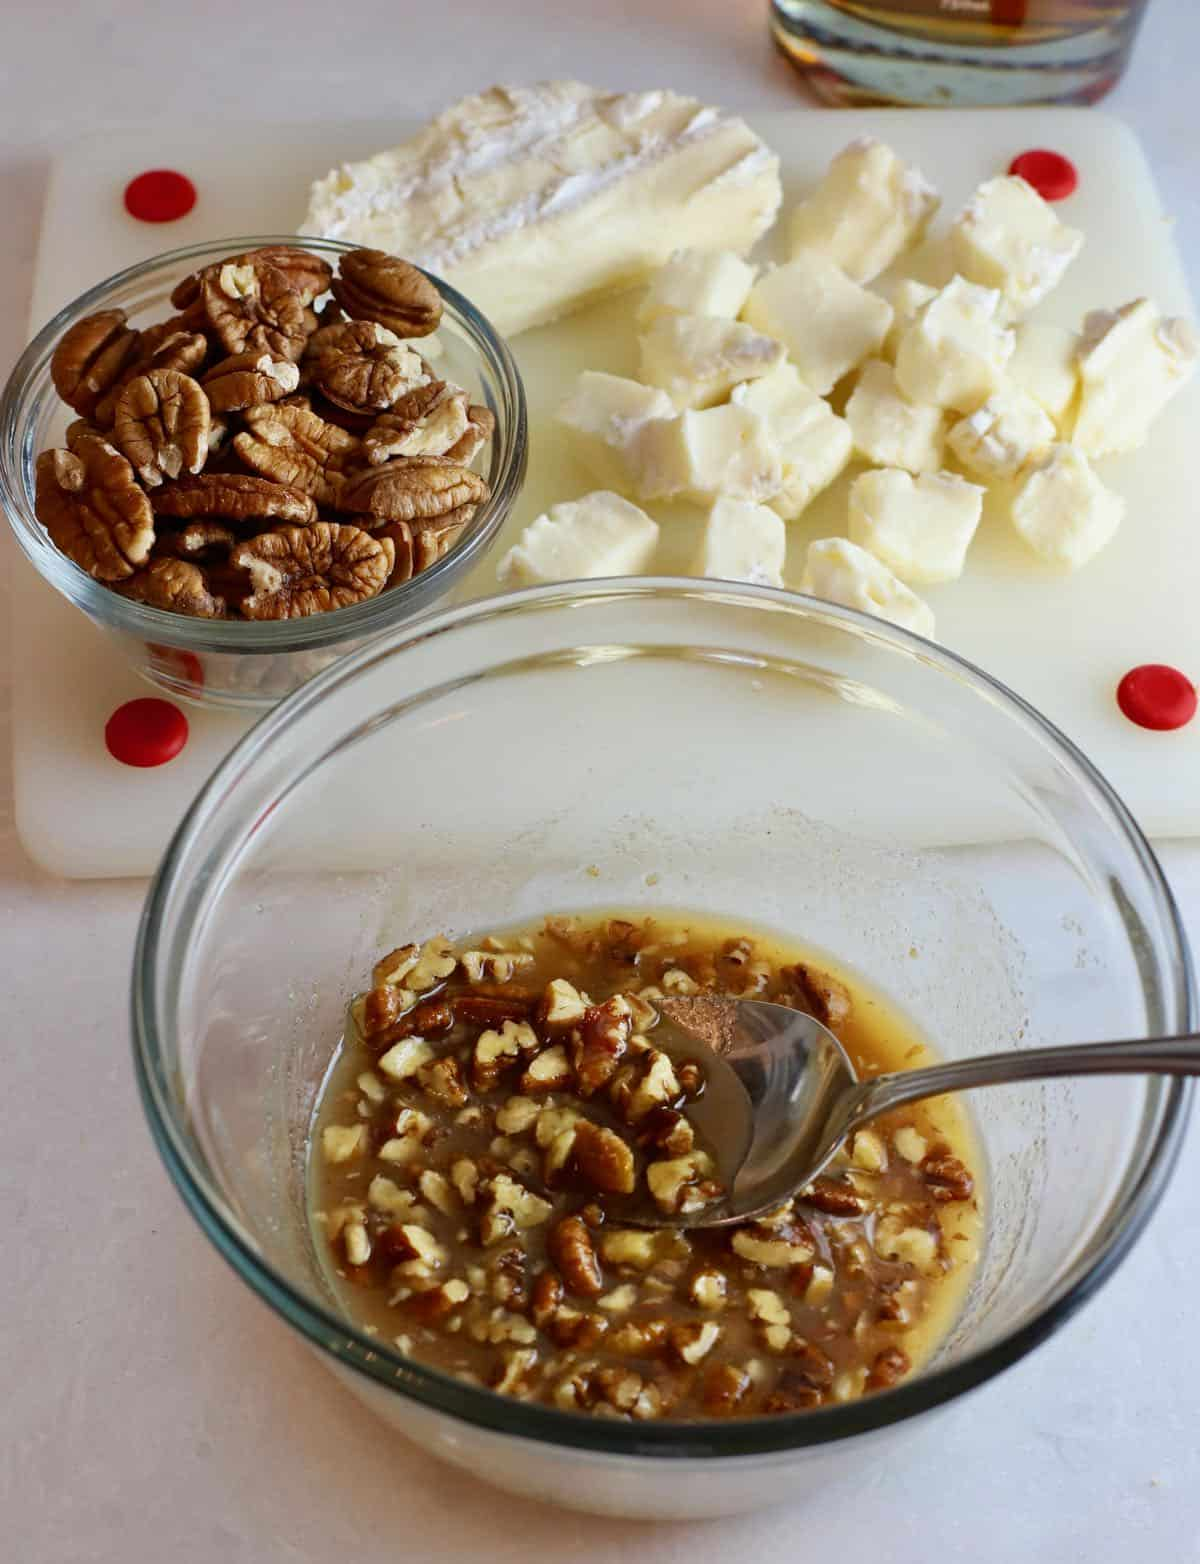 Bourbon, butter, pecans and brown sugar in a bowl.